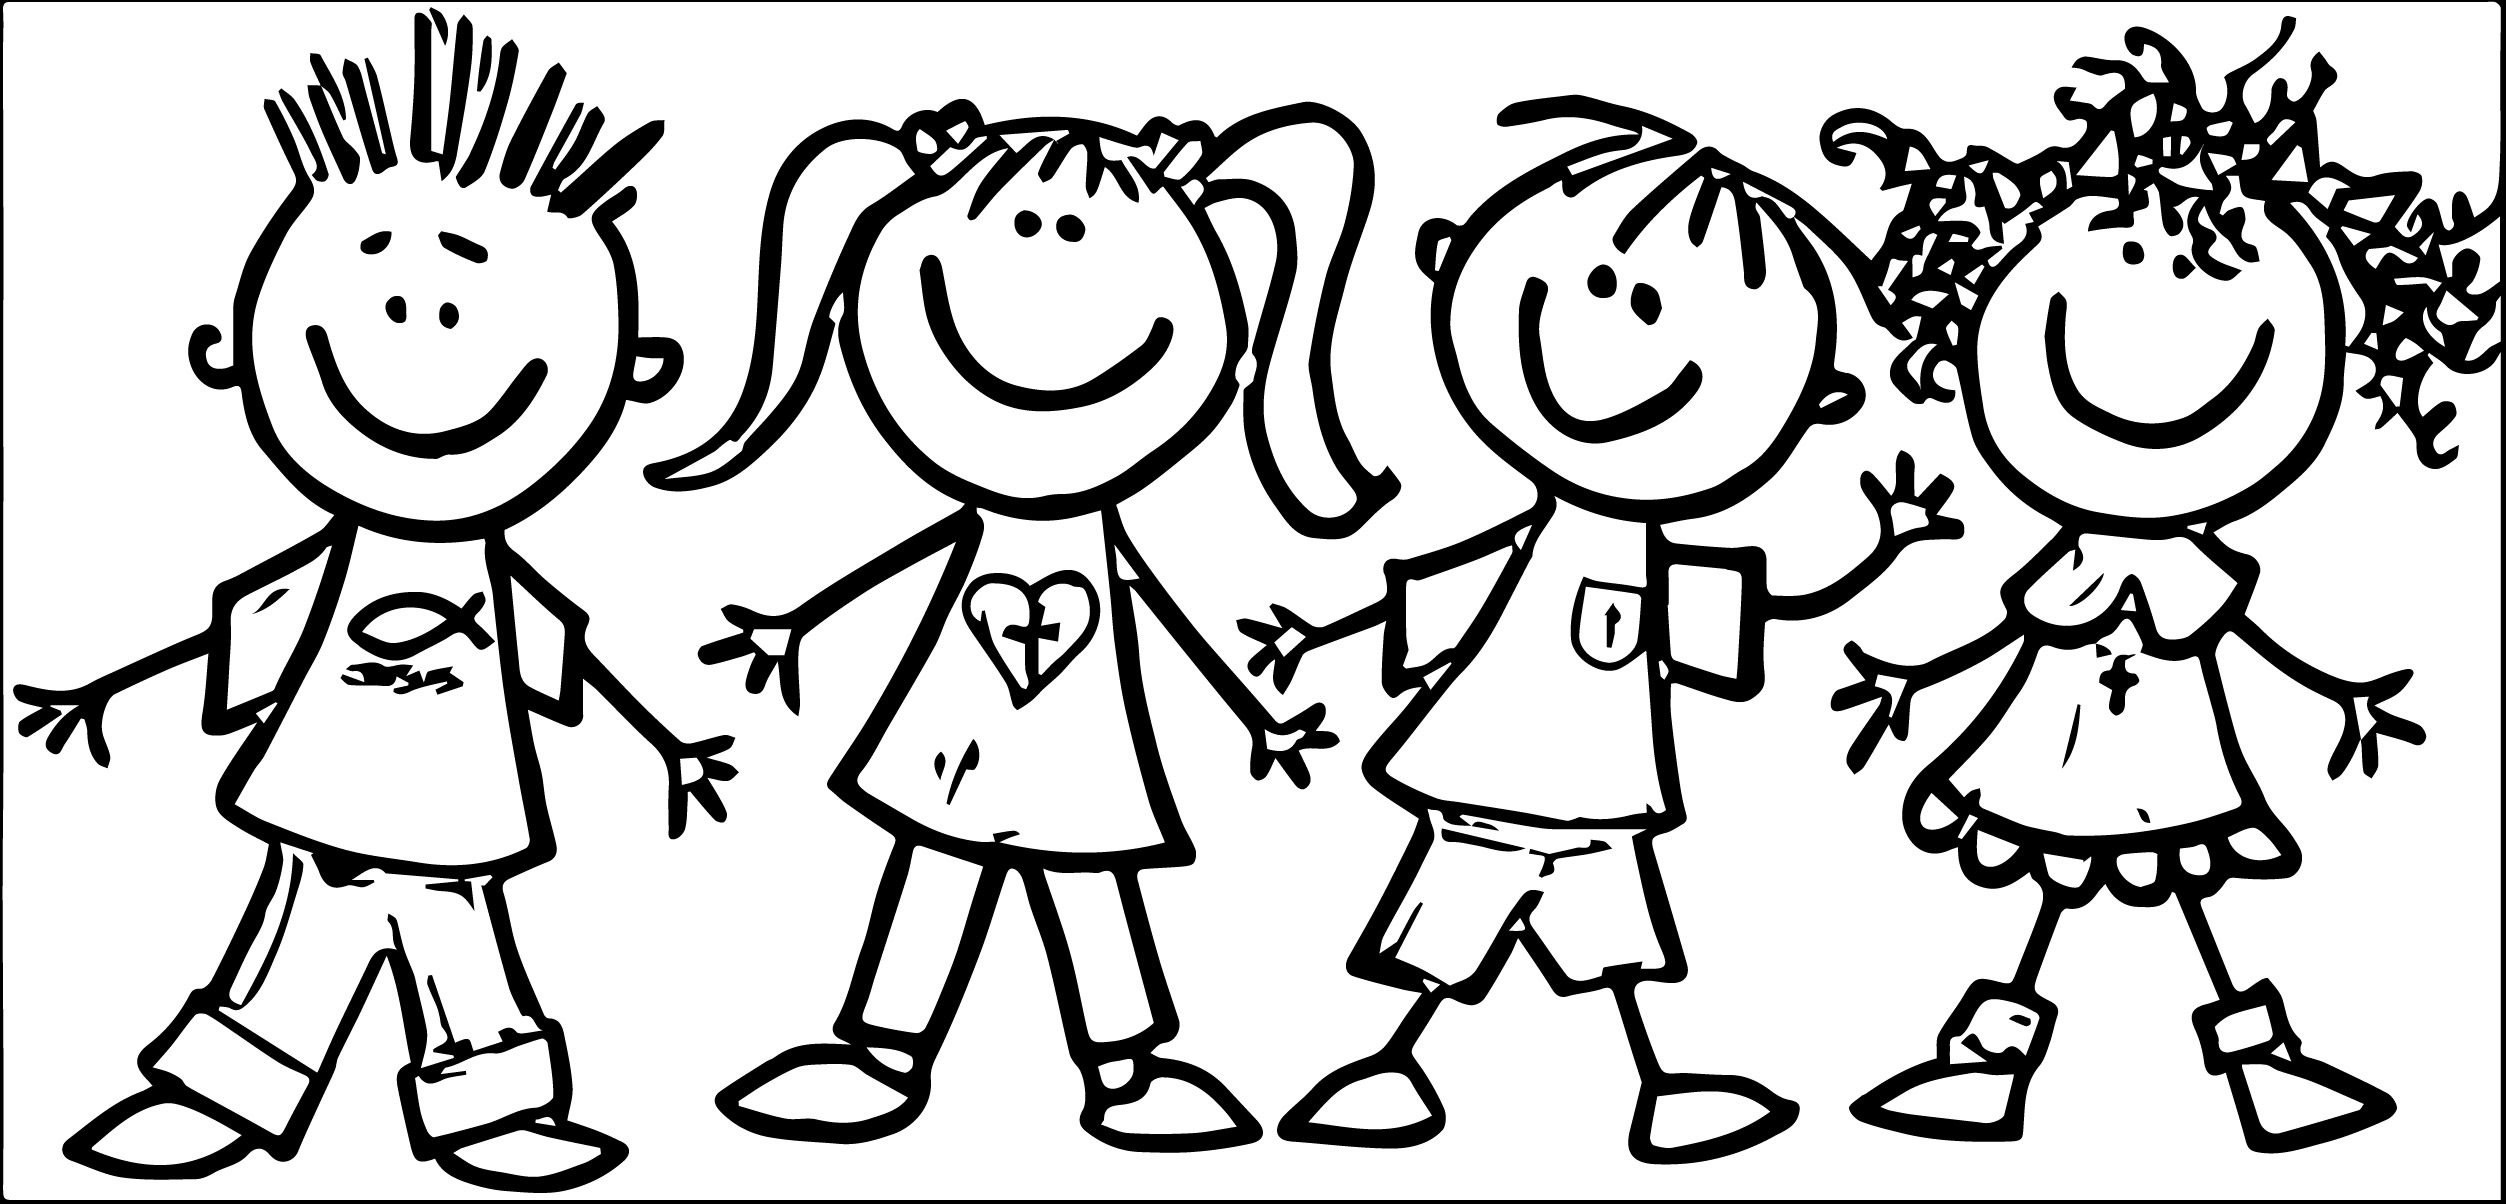 school clipart coloring house outline drawing at getdrawings free download coloring school clipart